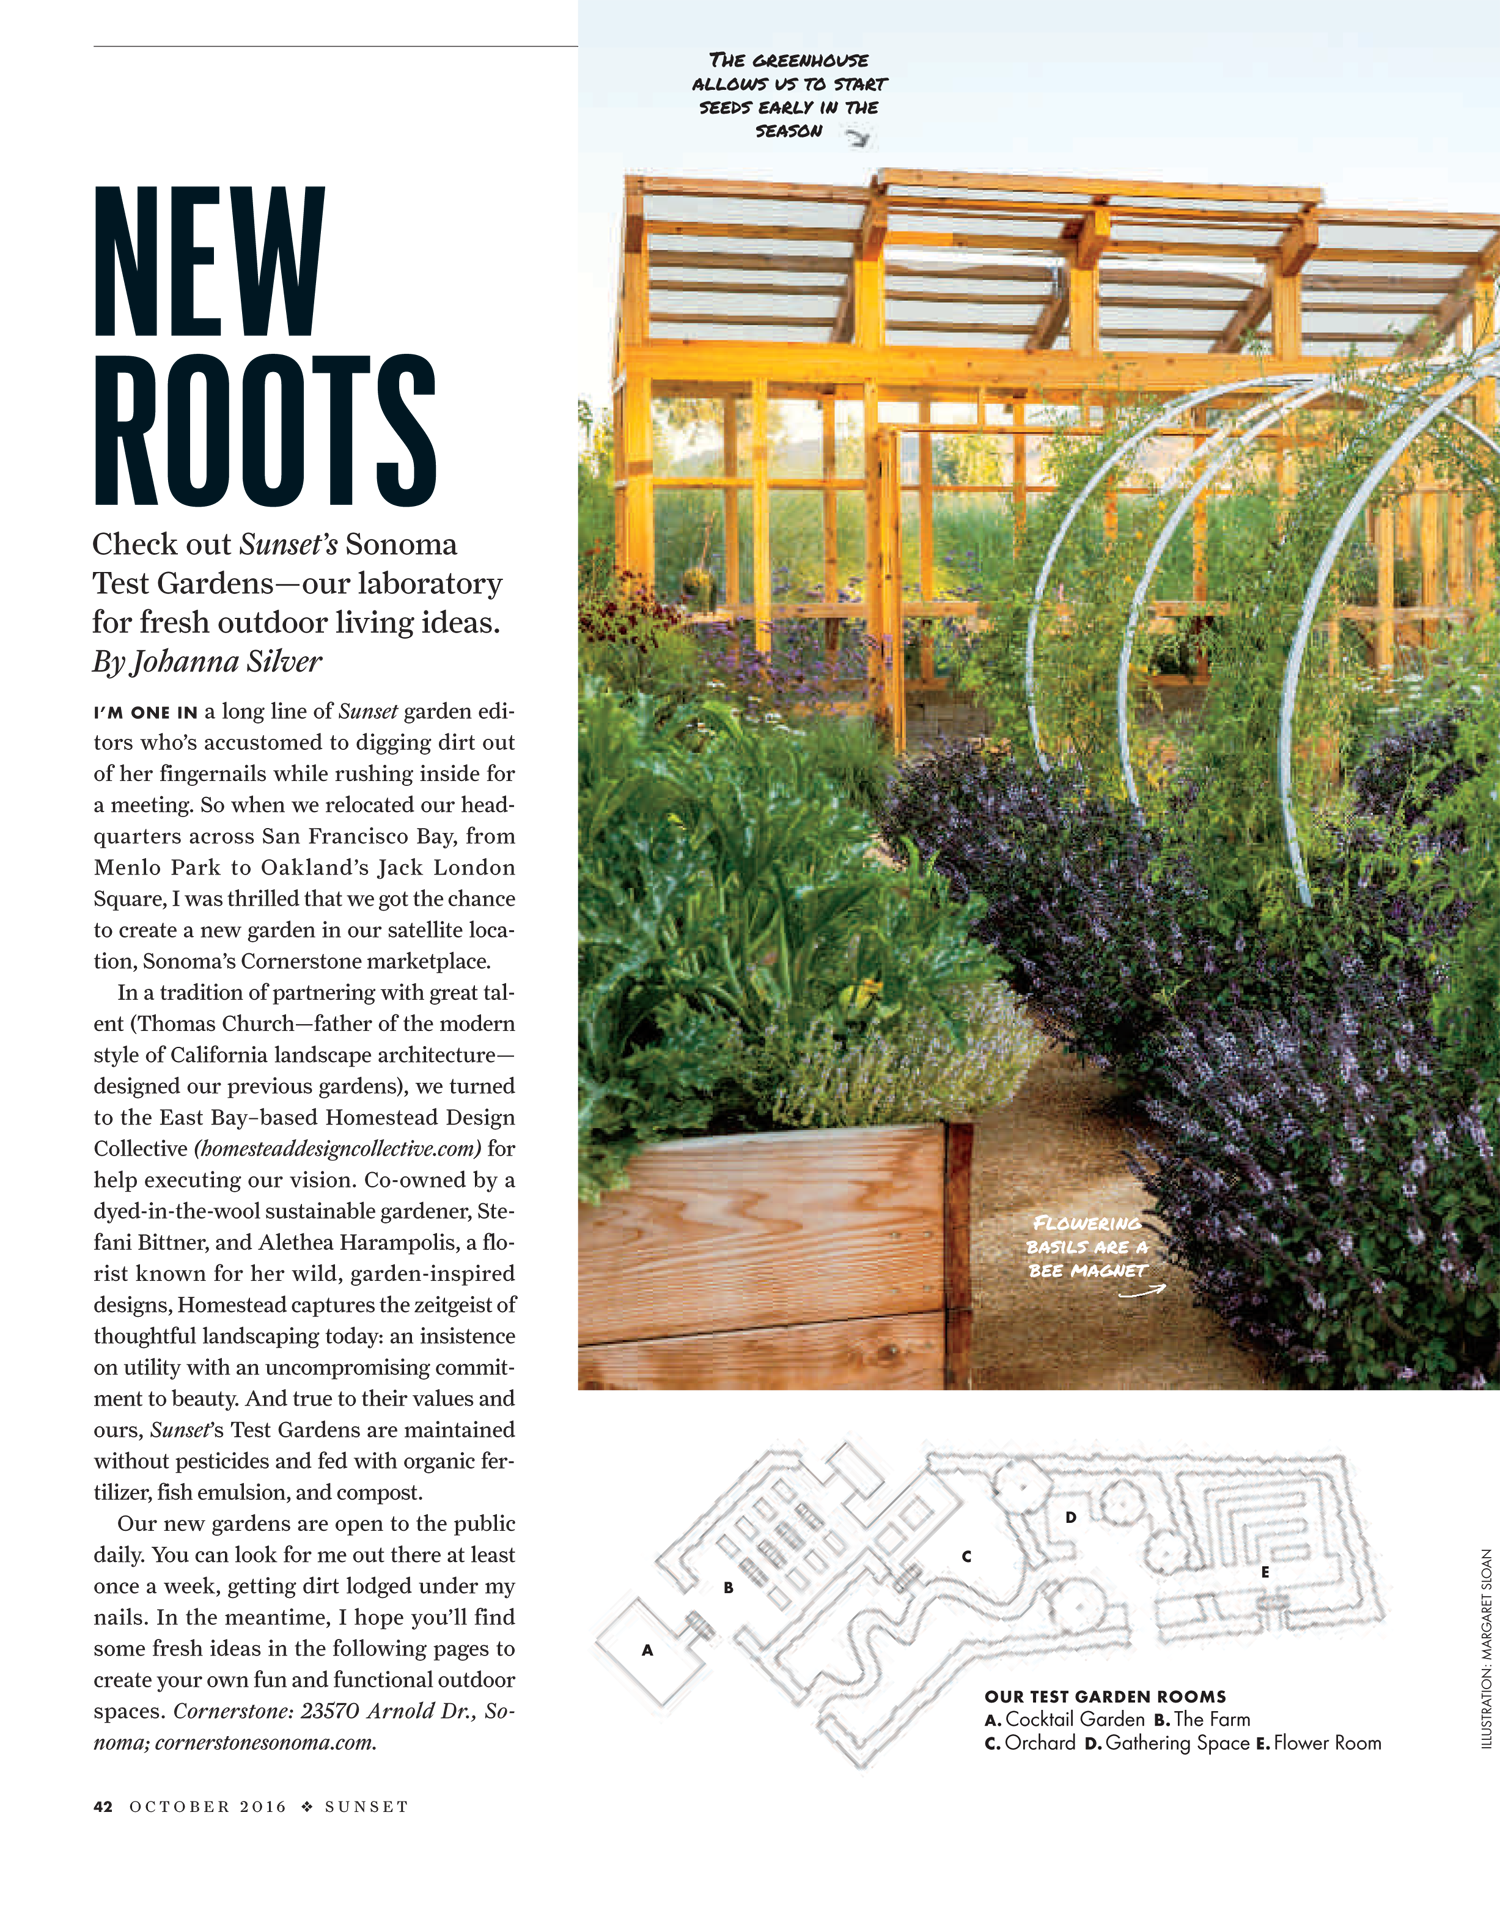 The greenhouse collective - Sunset Magazine Showcases Its New Sonoma Test Gardens Designed And Maintained By The Homestead Design